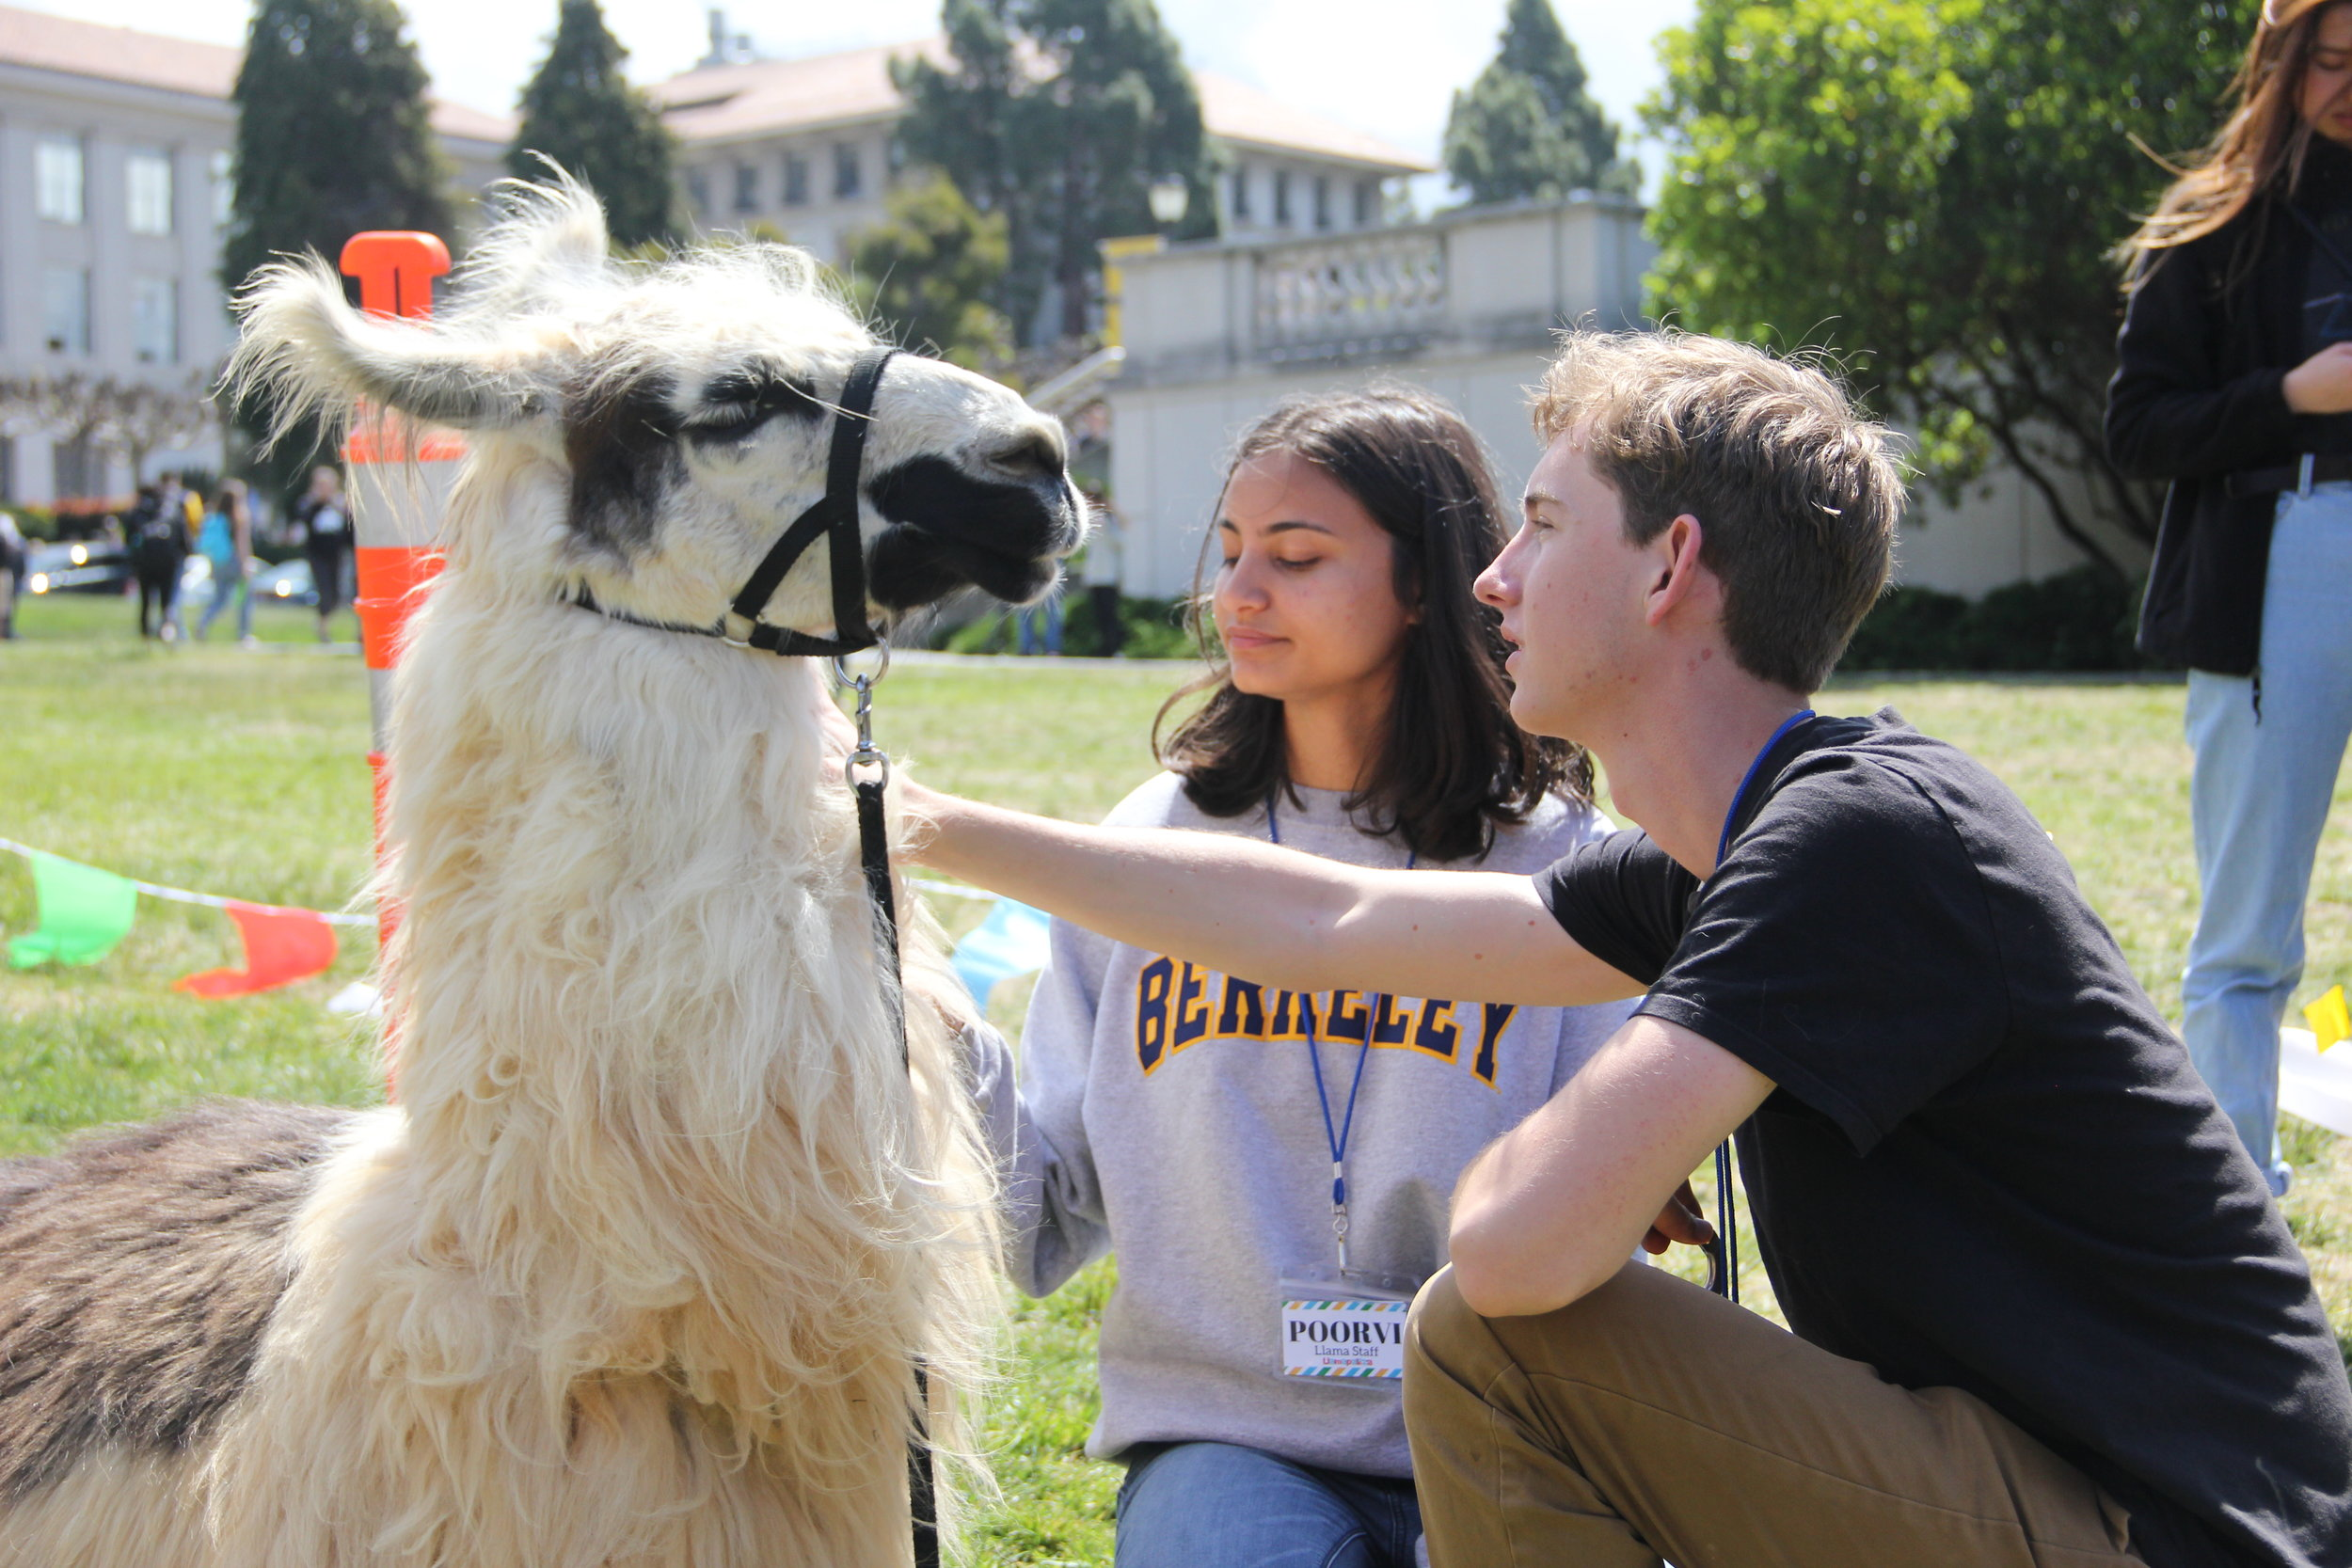 Llamas in UCBerkeley